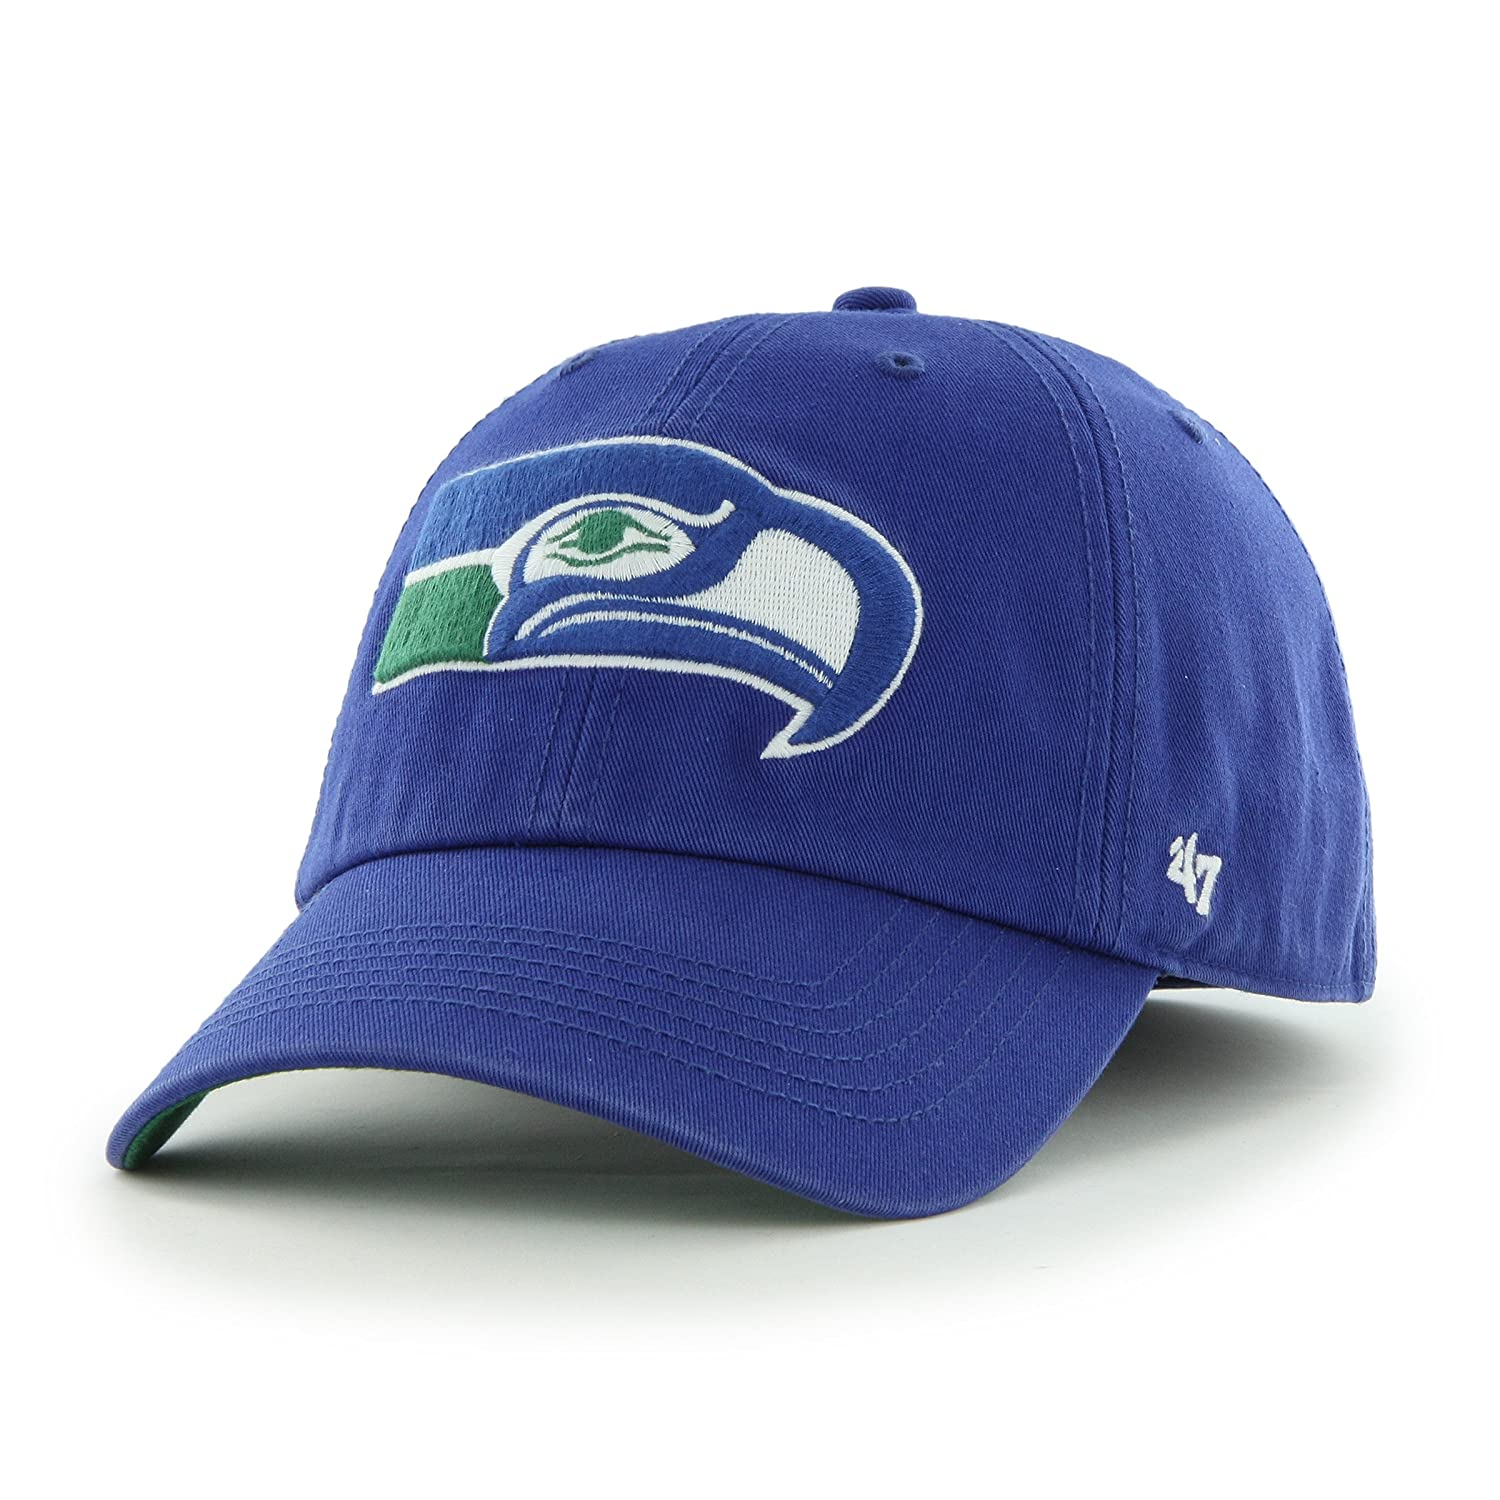 separation shoes 04807 62e97 Amazon.com    47 NFL Seattle Seahawks Brand Franchise Fitted Hat   Clothing